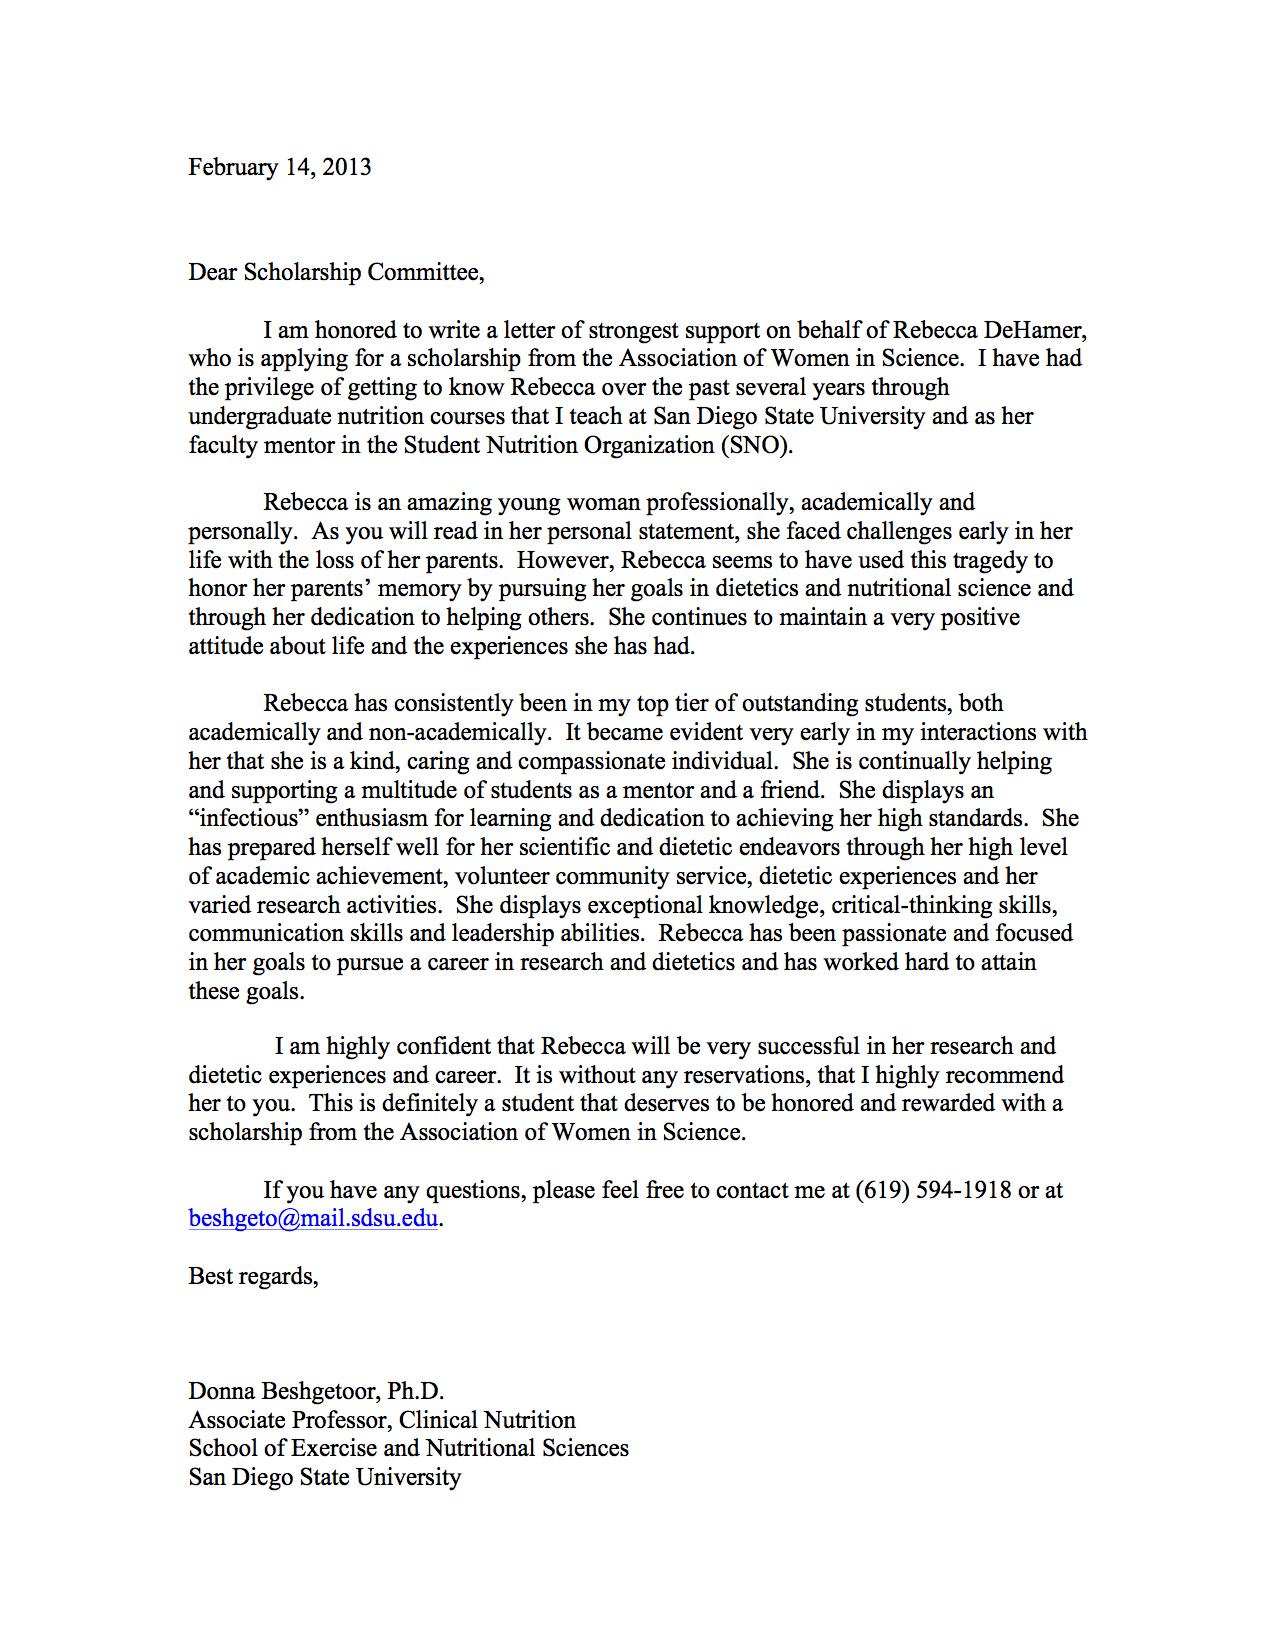 Reference Letter For Scholarship